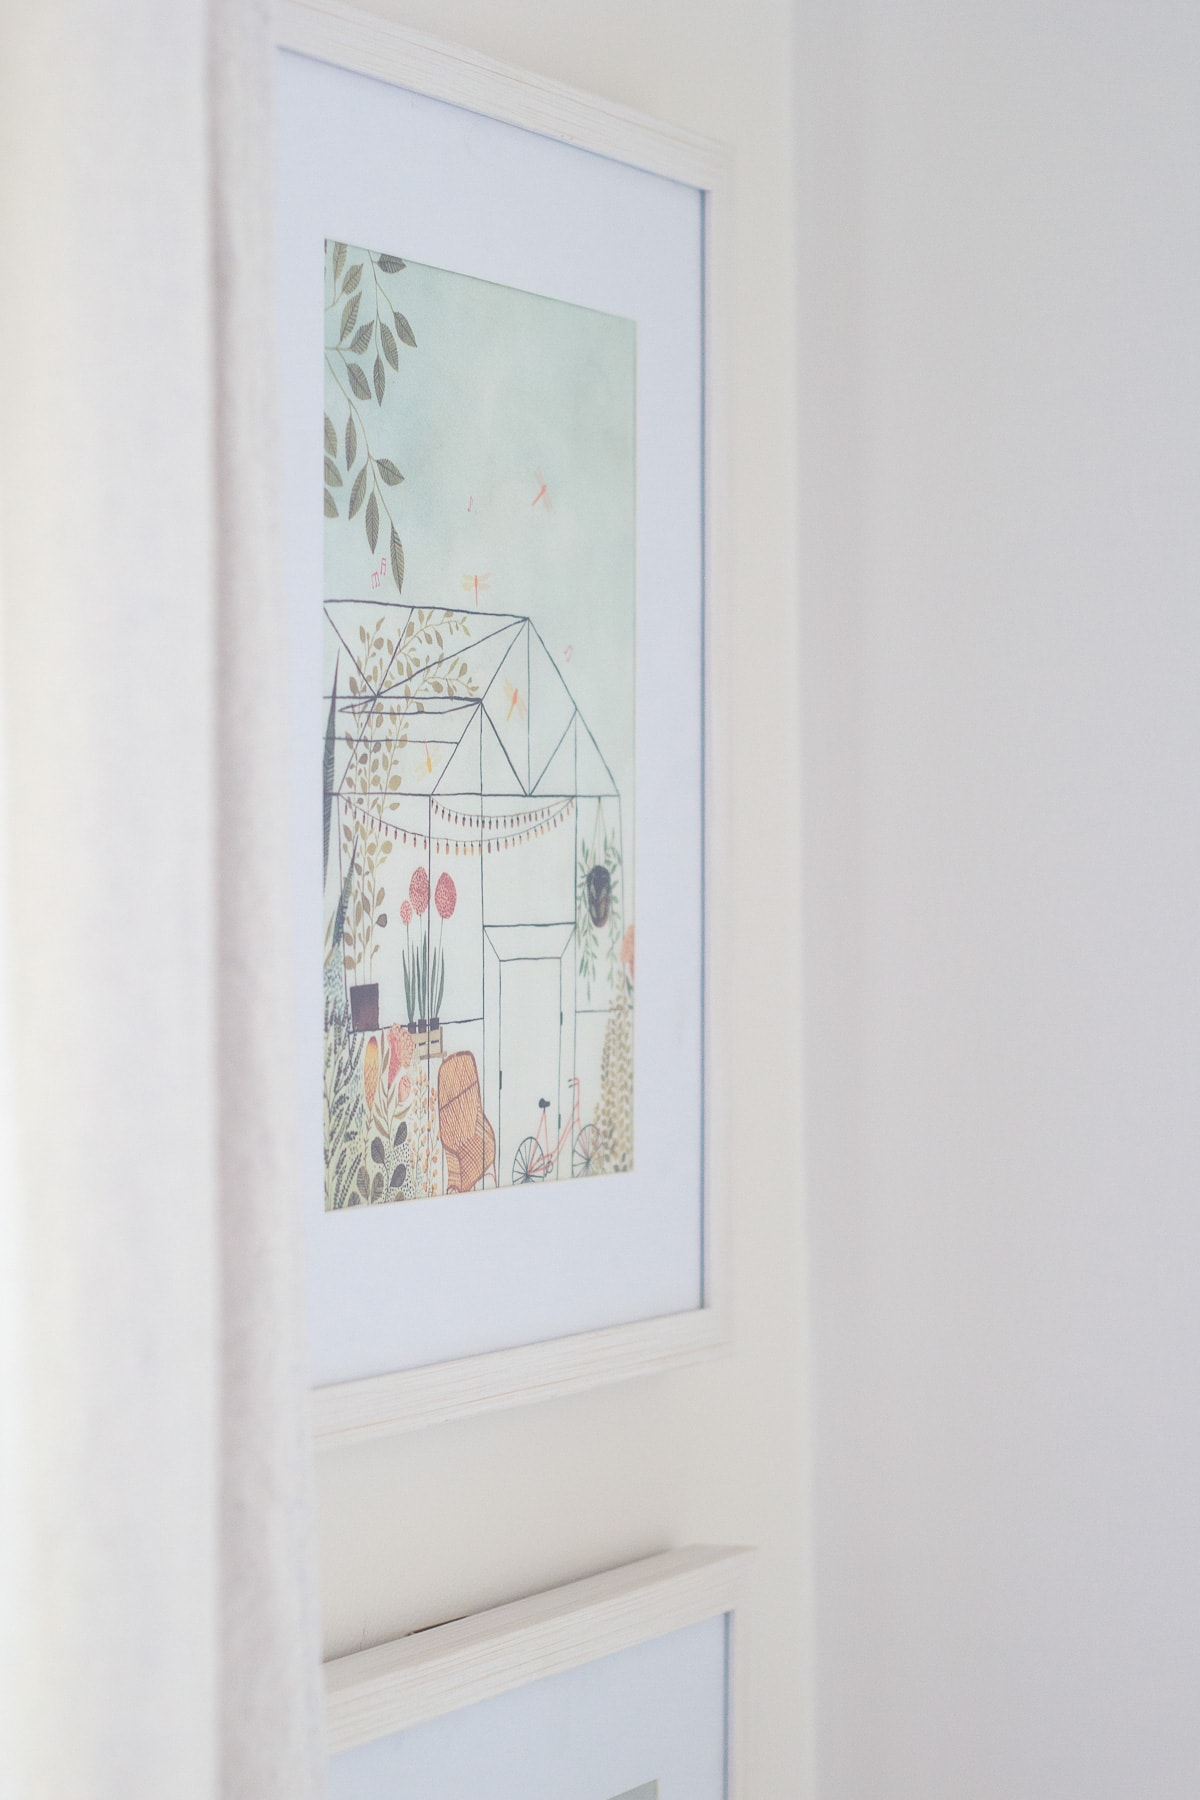 Repurposing children's books by using a page as art in a simple white frame.